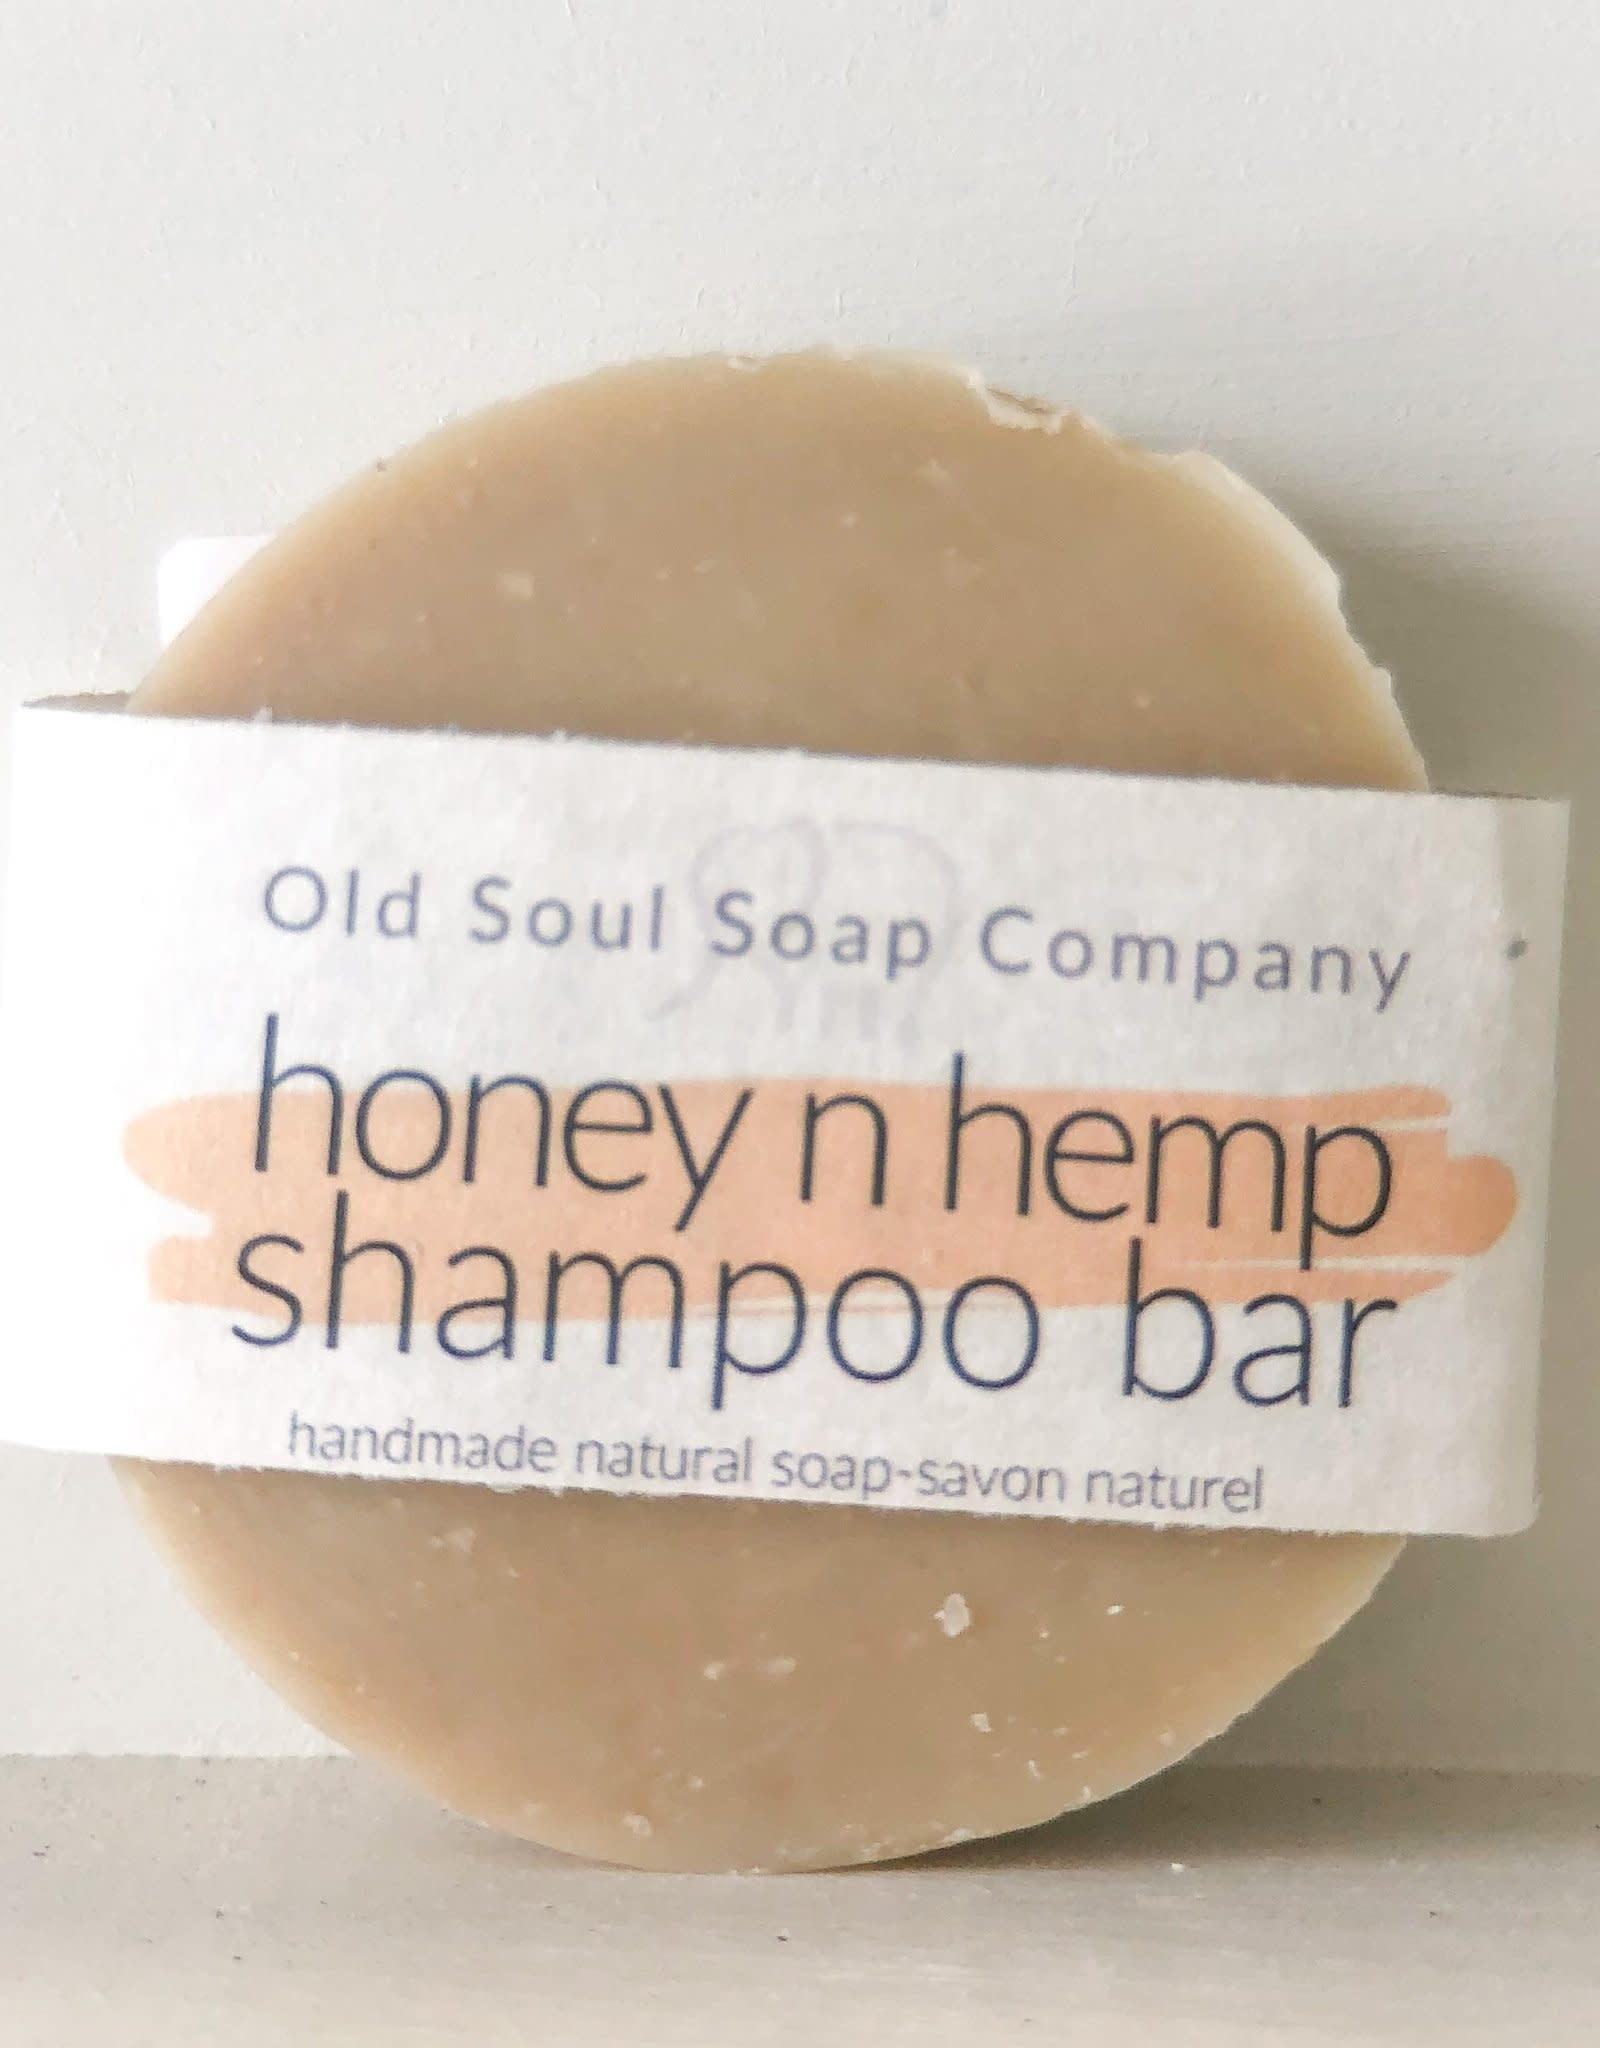 Old Soul Soap Company Shampoo Bar